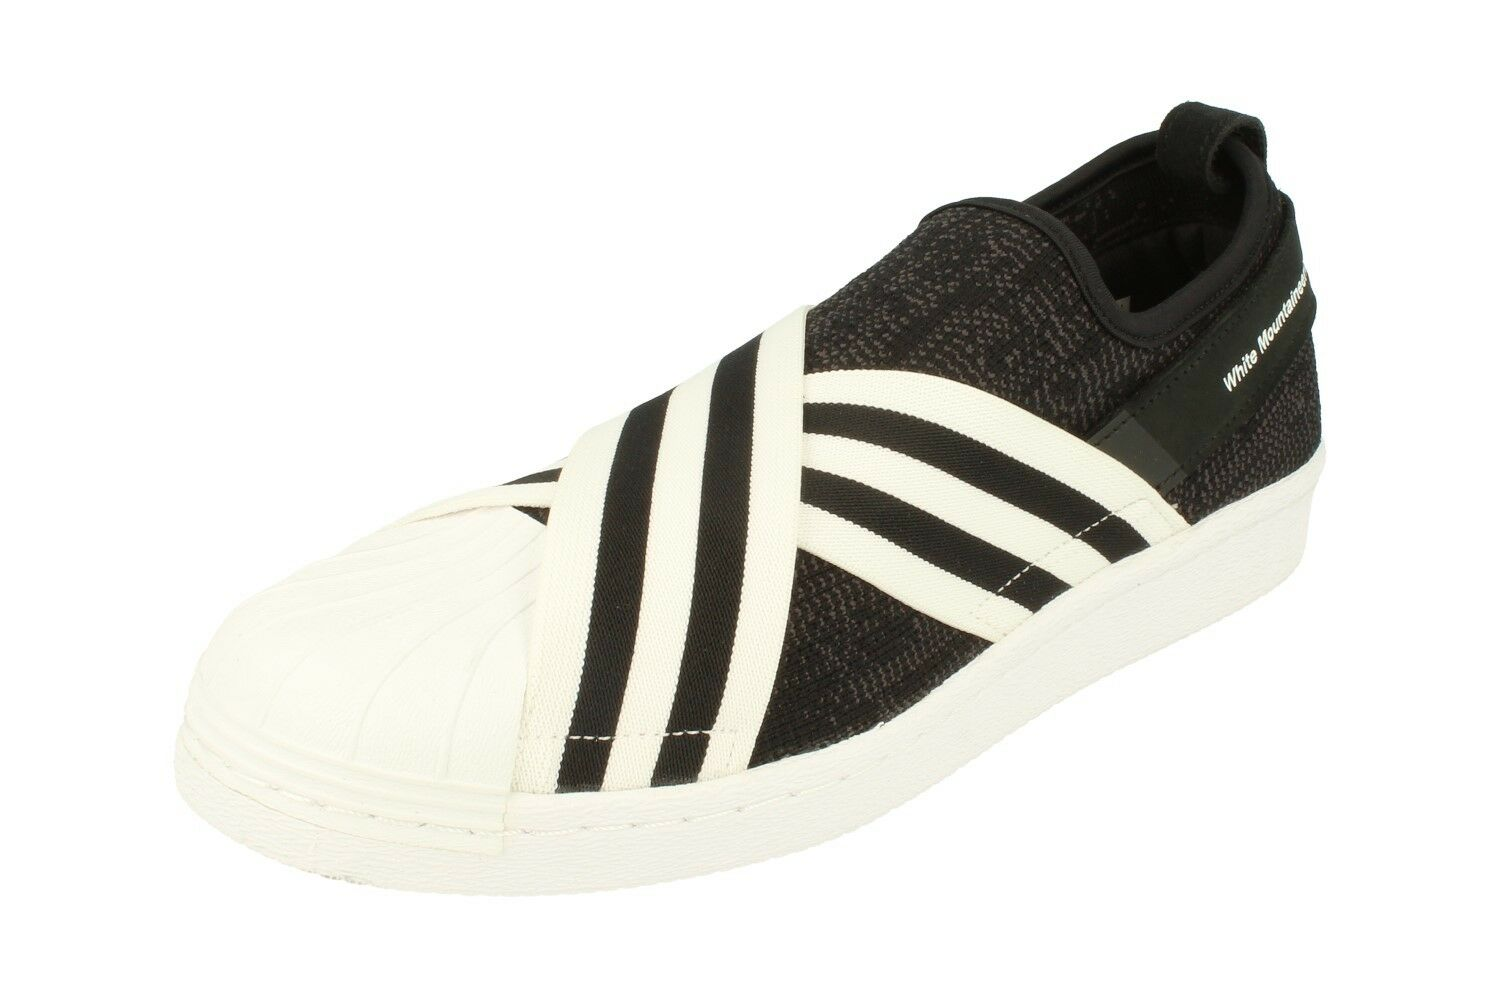 Adidas Originals White On Mountaineering Wm Superstar Slip On White Pk Hombre BY2880 6b6a0b